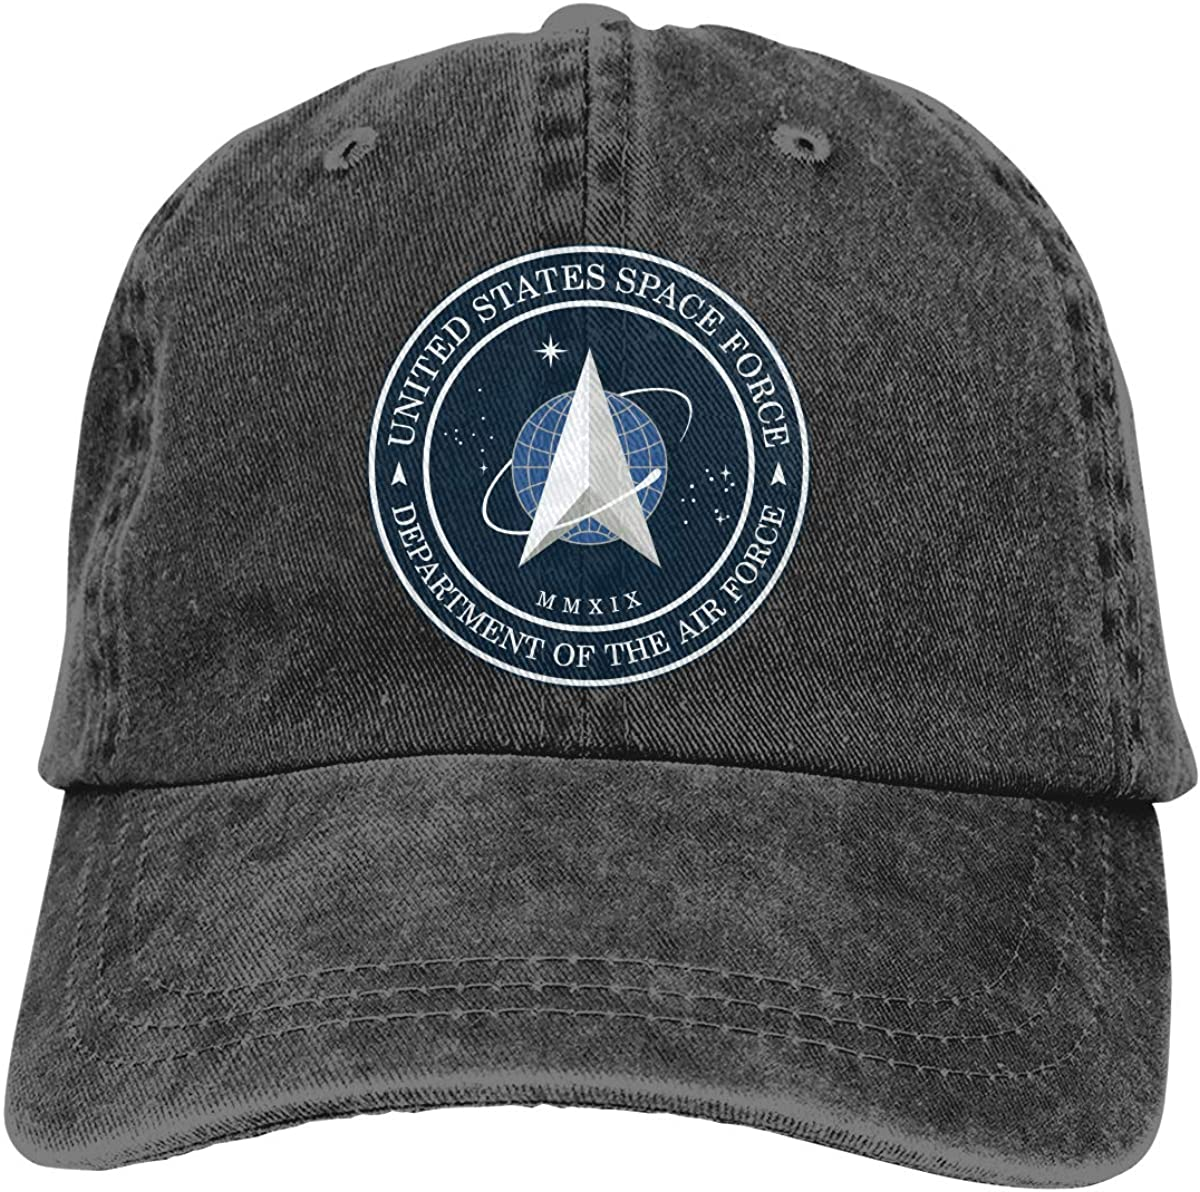 United cheap States Space Force Unisex Jeans Cap price A Sports Hat Baseball